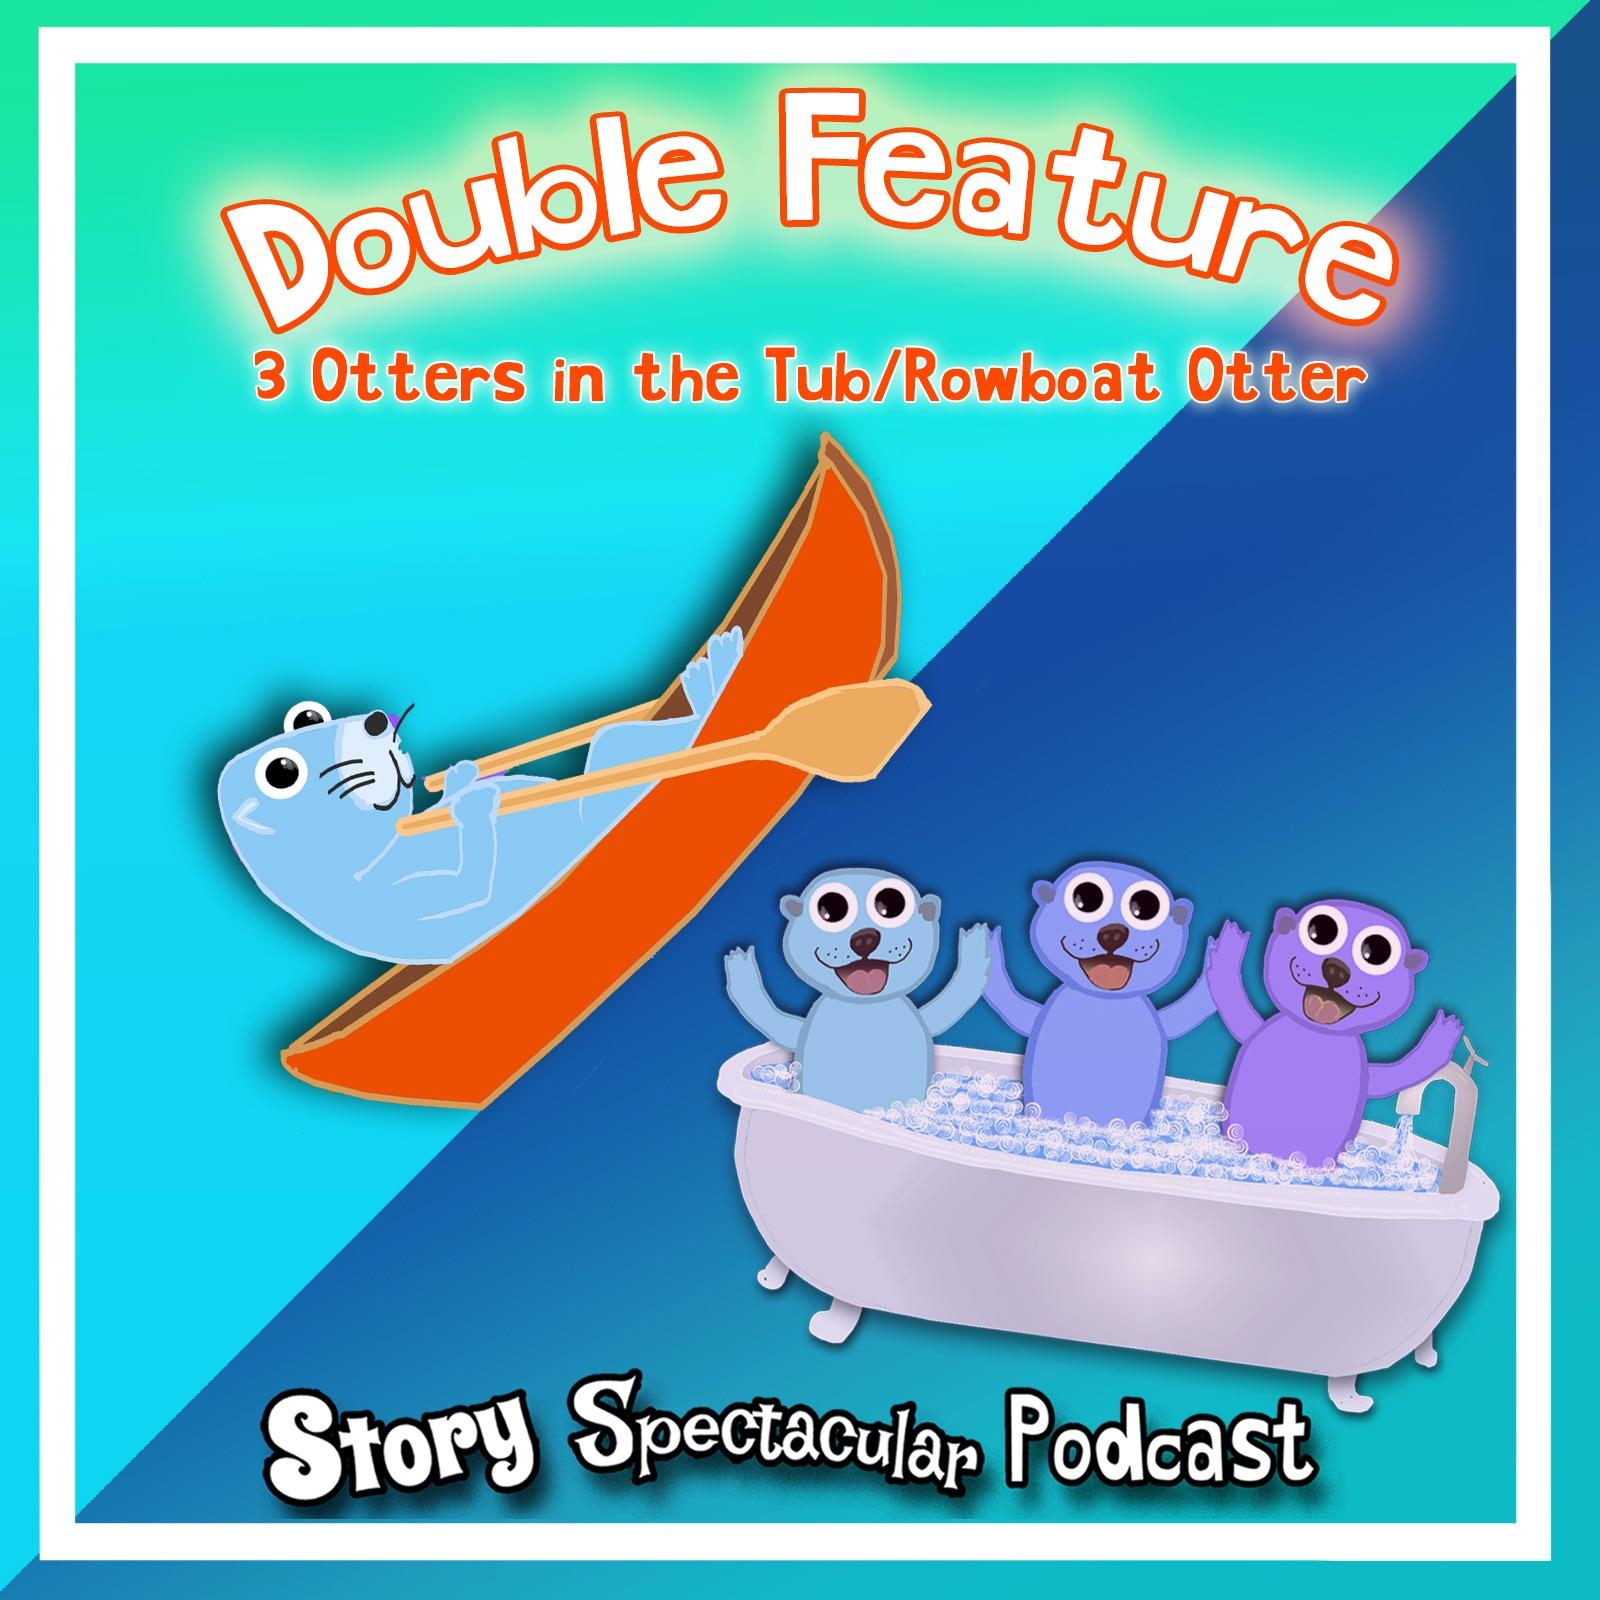 Double Feature: 3 Otters in a Tub/ Row Boat Otter (Bedtime)